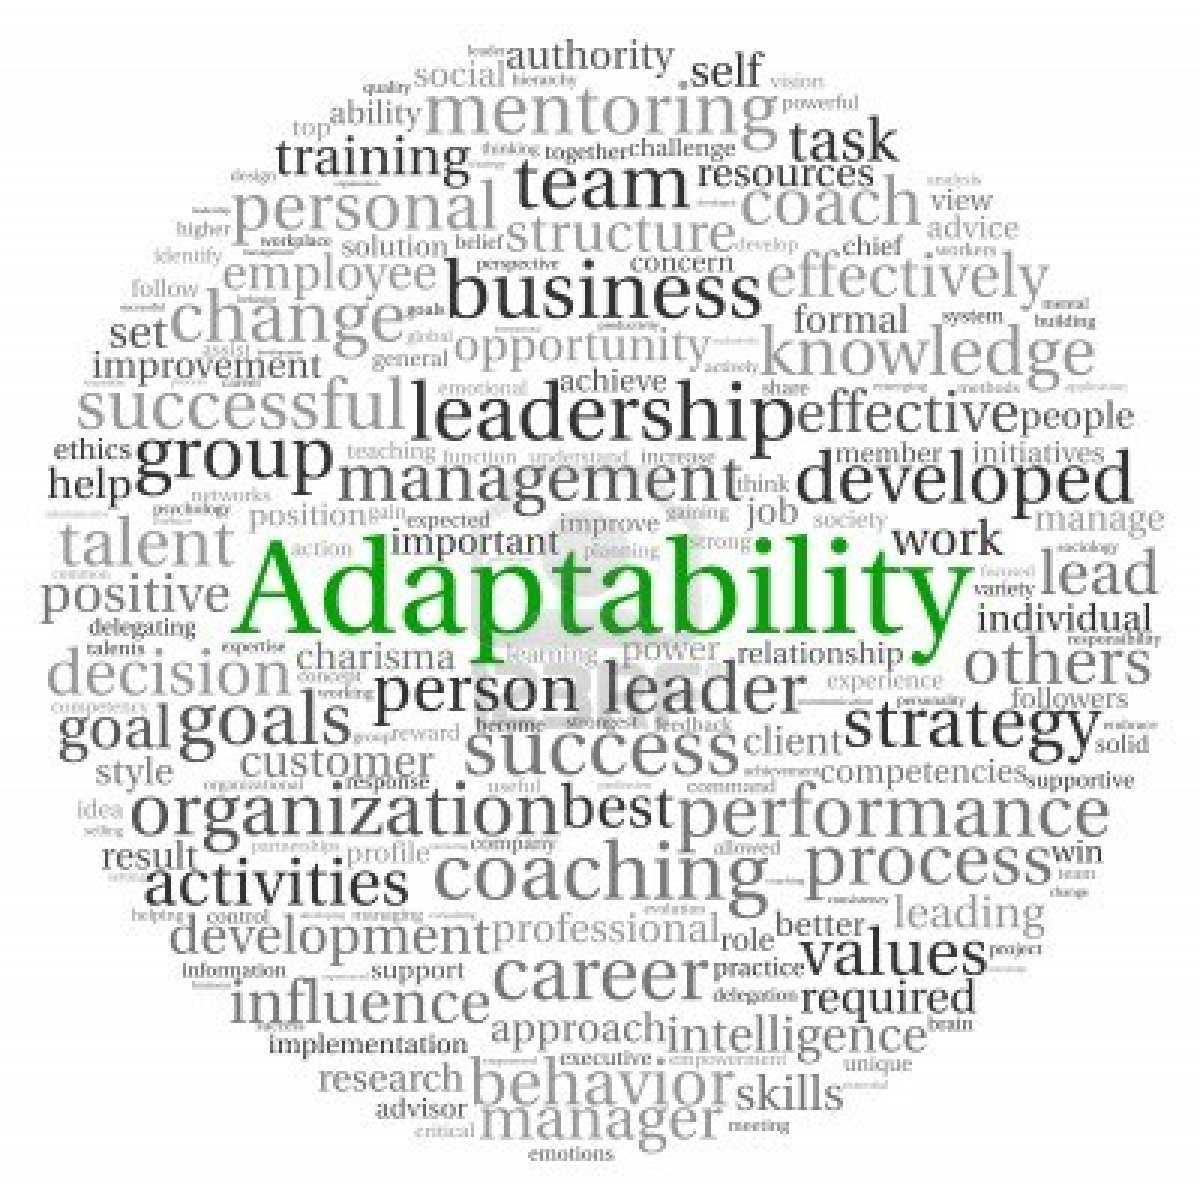 Ismail IT Fundamental : Explain why adaptability and